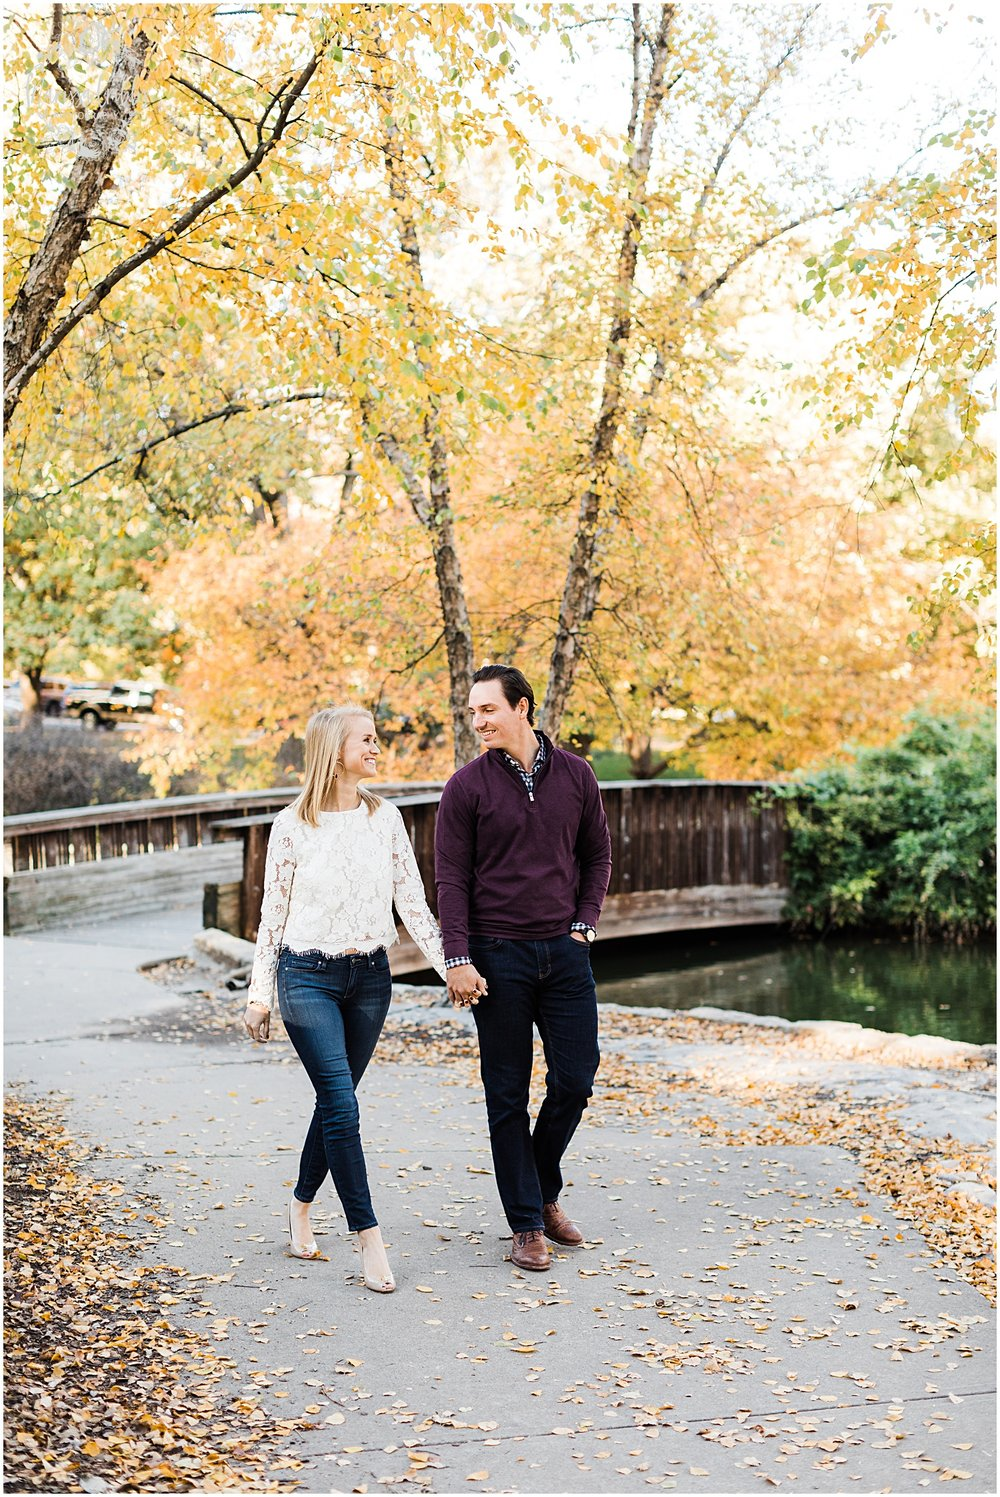 HALEY & CHASE ENGAGED LOOSE PARK & NELSON ATKINS | FALL ENGAGEMENT PHOTOS | MARISSA CRIBBS PHOTOGRAPHY_6849.jpg